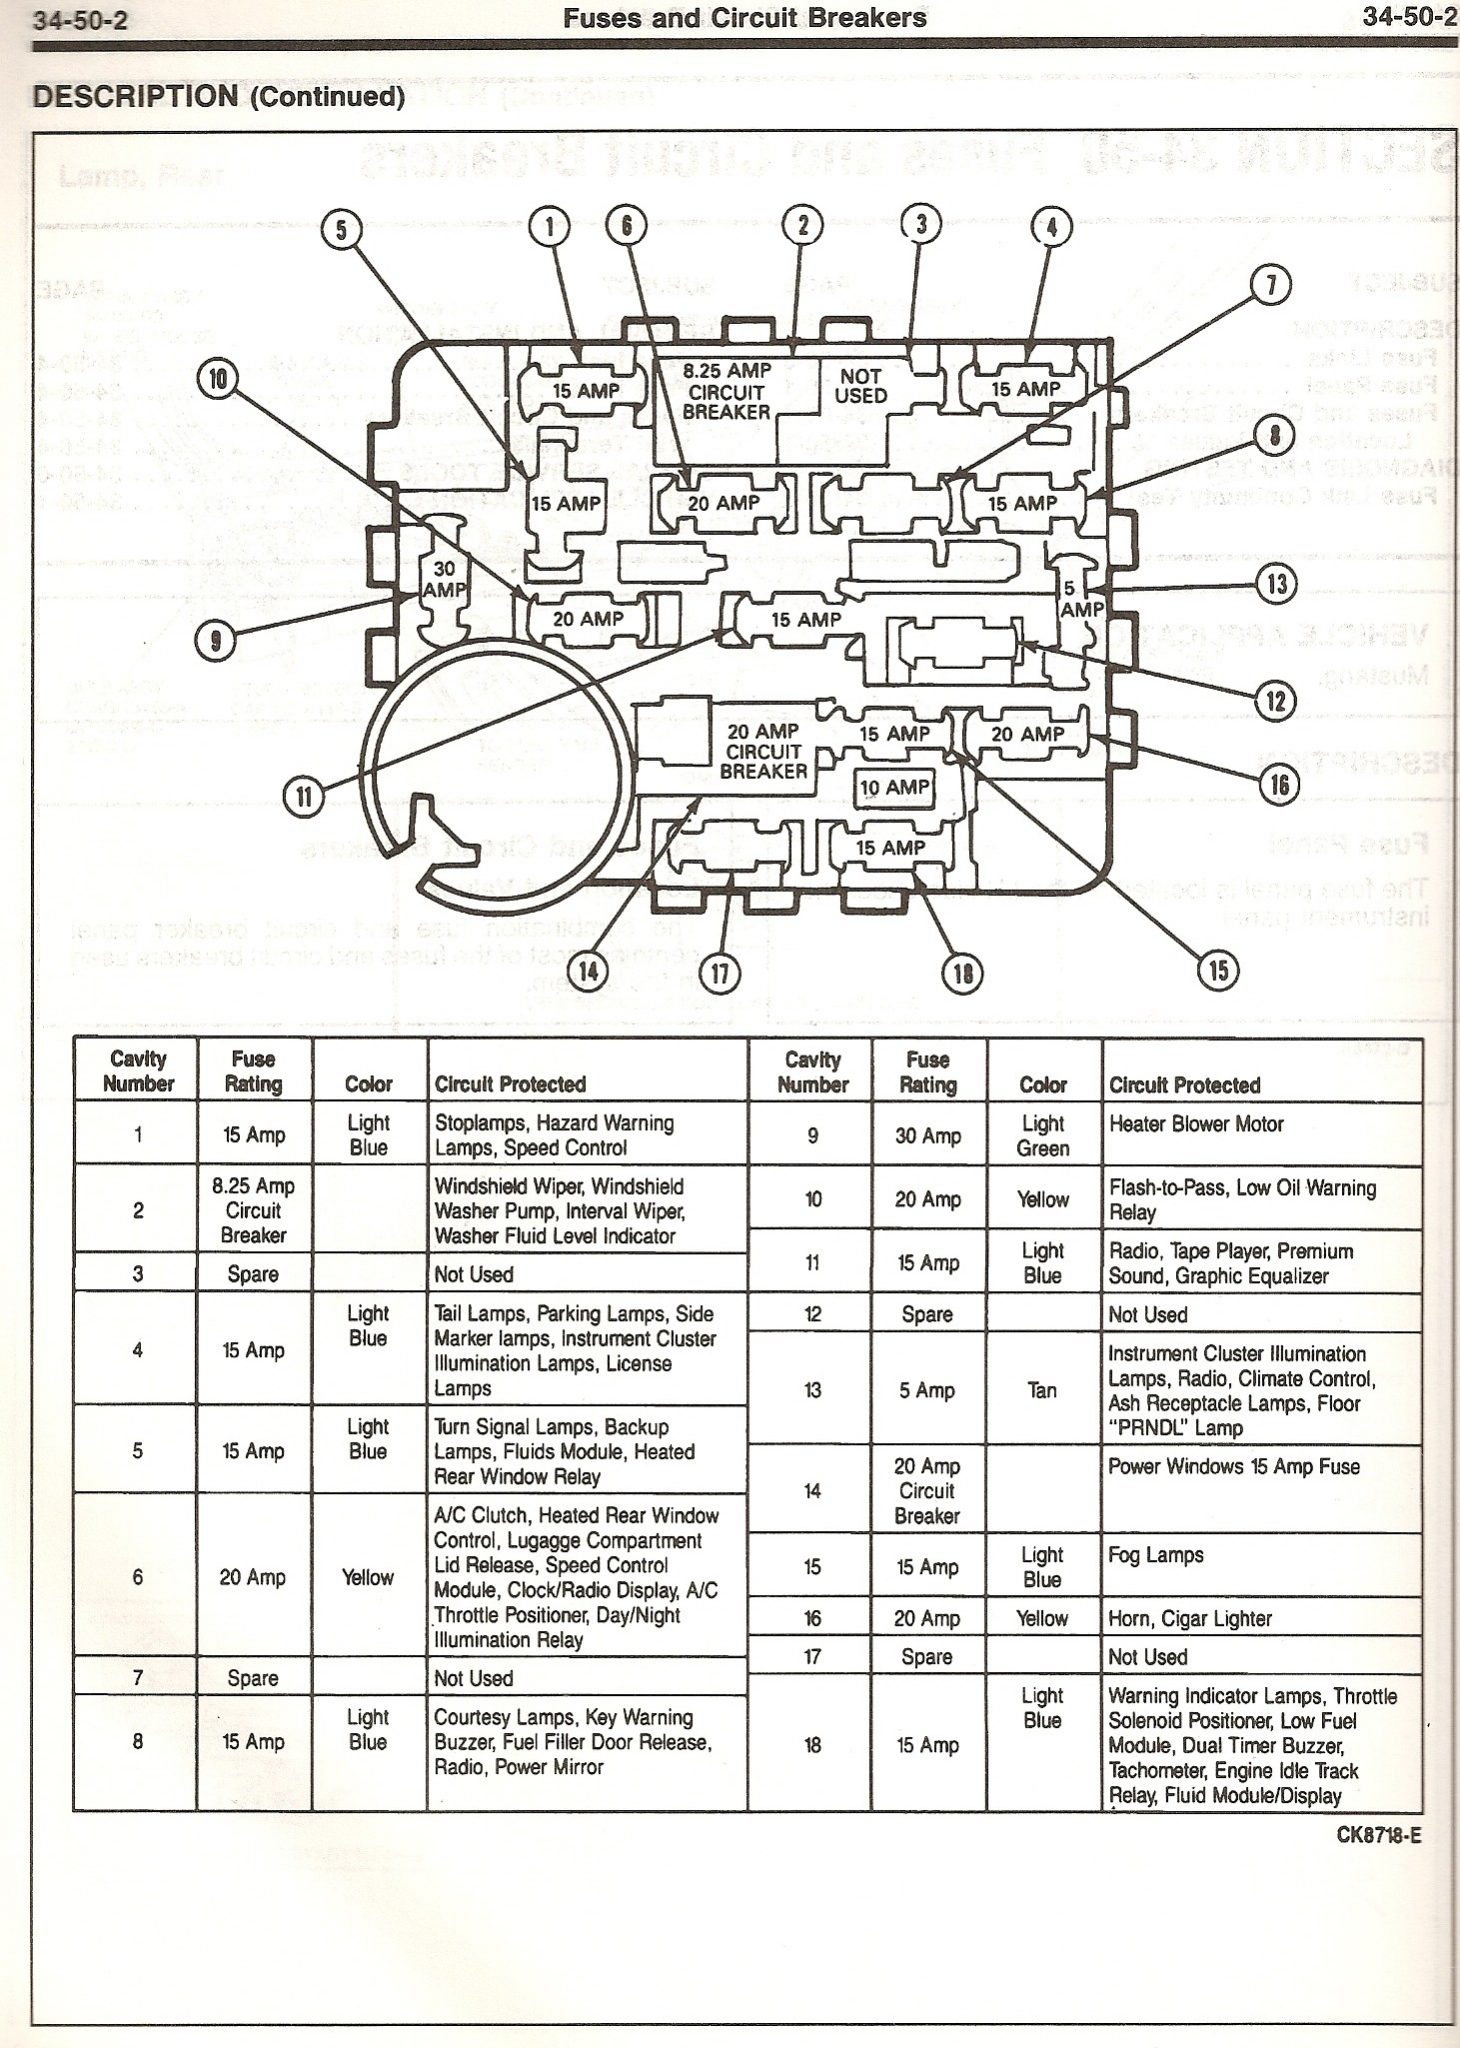 1993 Ford Probe Fuse Box Diagram | Wiring Schematic Diagram ...  Ford Ranger Instrument Cluster Wiring Diagram on